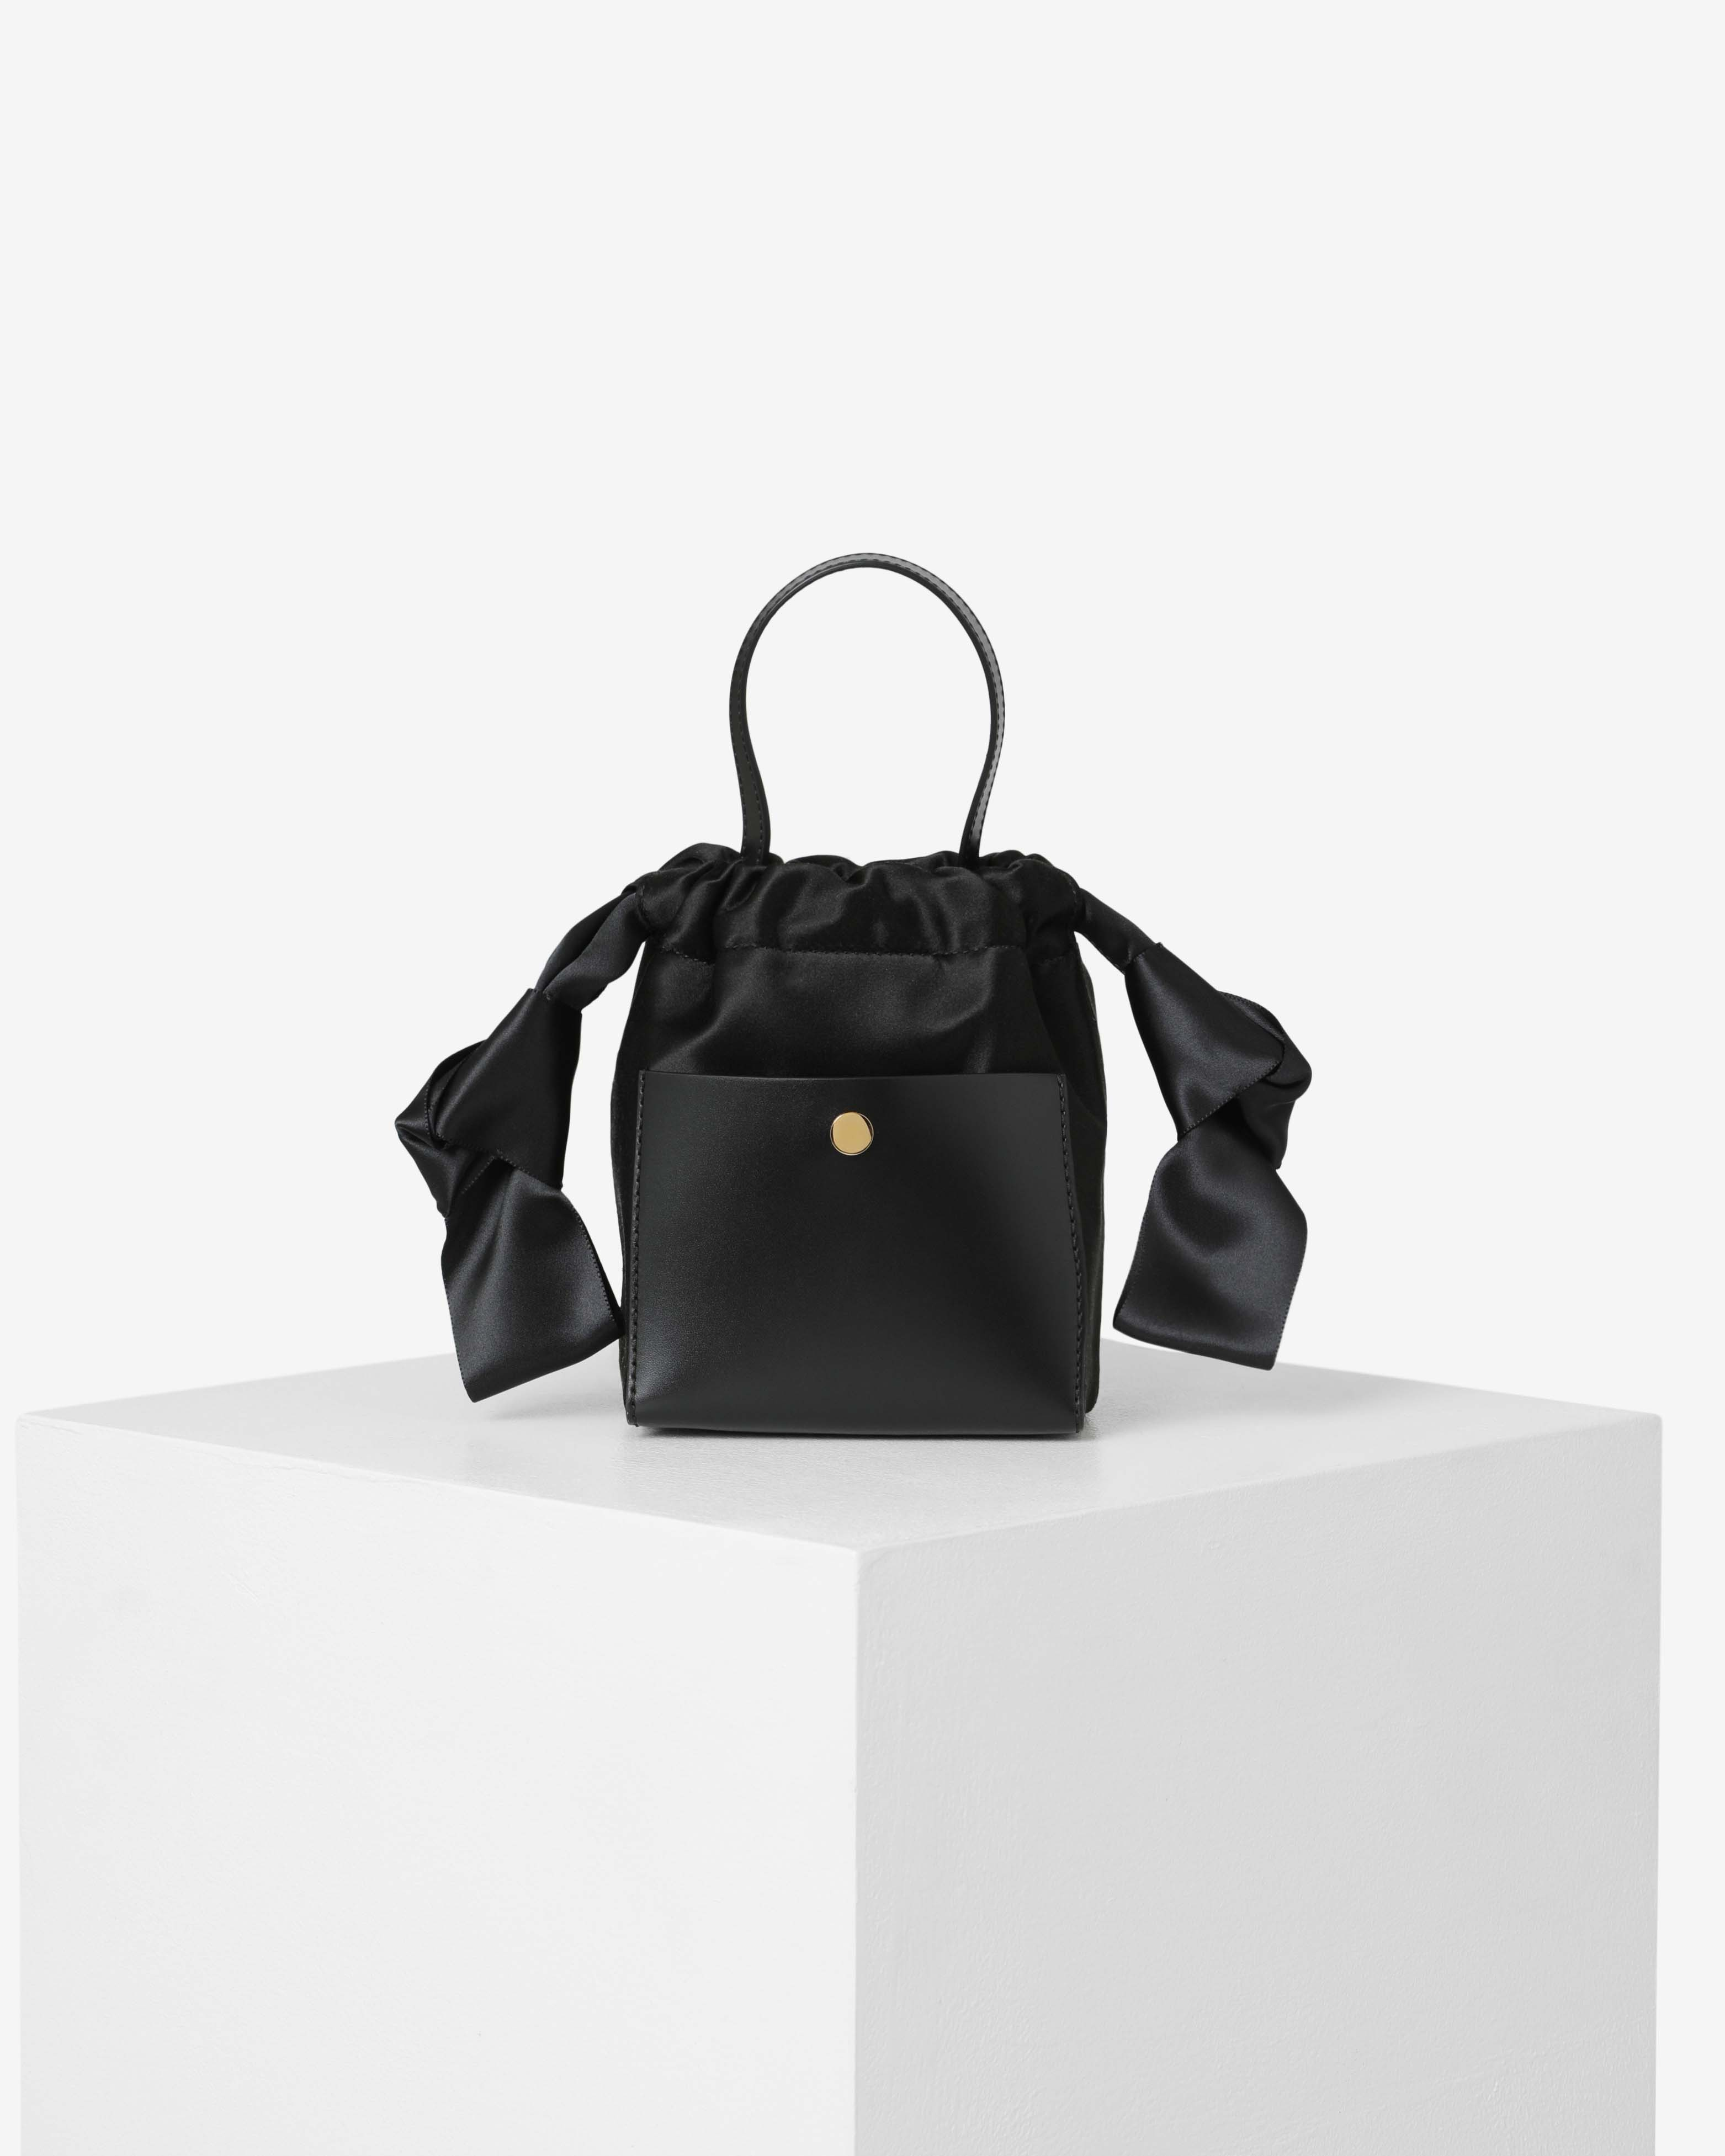 Black Satin Nano Knot by Sophie Hulme on curated-crowd.com